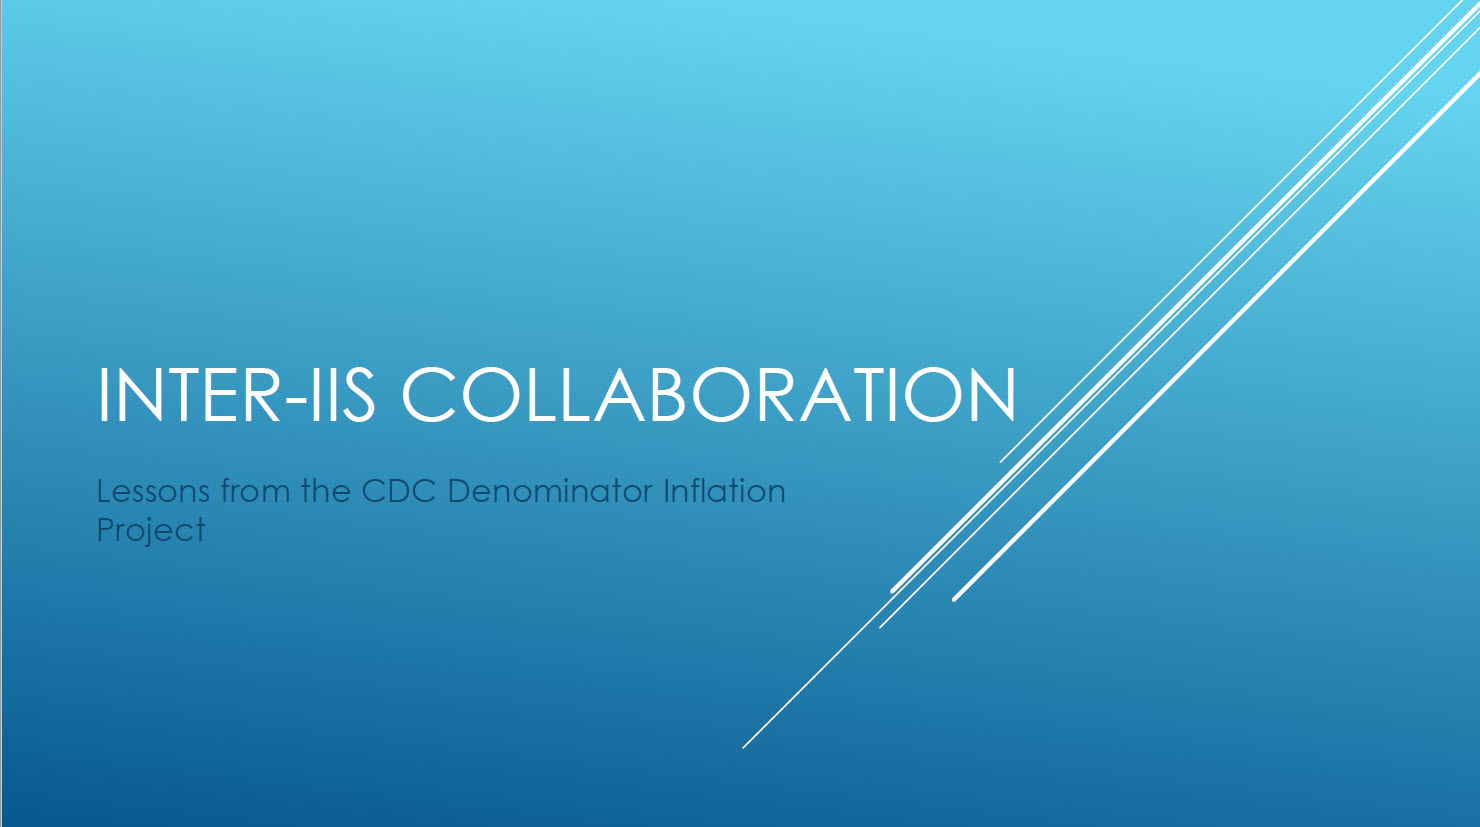 Inter-IIS Collaboration: Lessons from the CDC Denominator Inflation Project